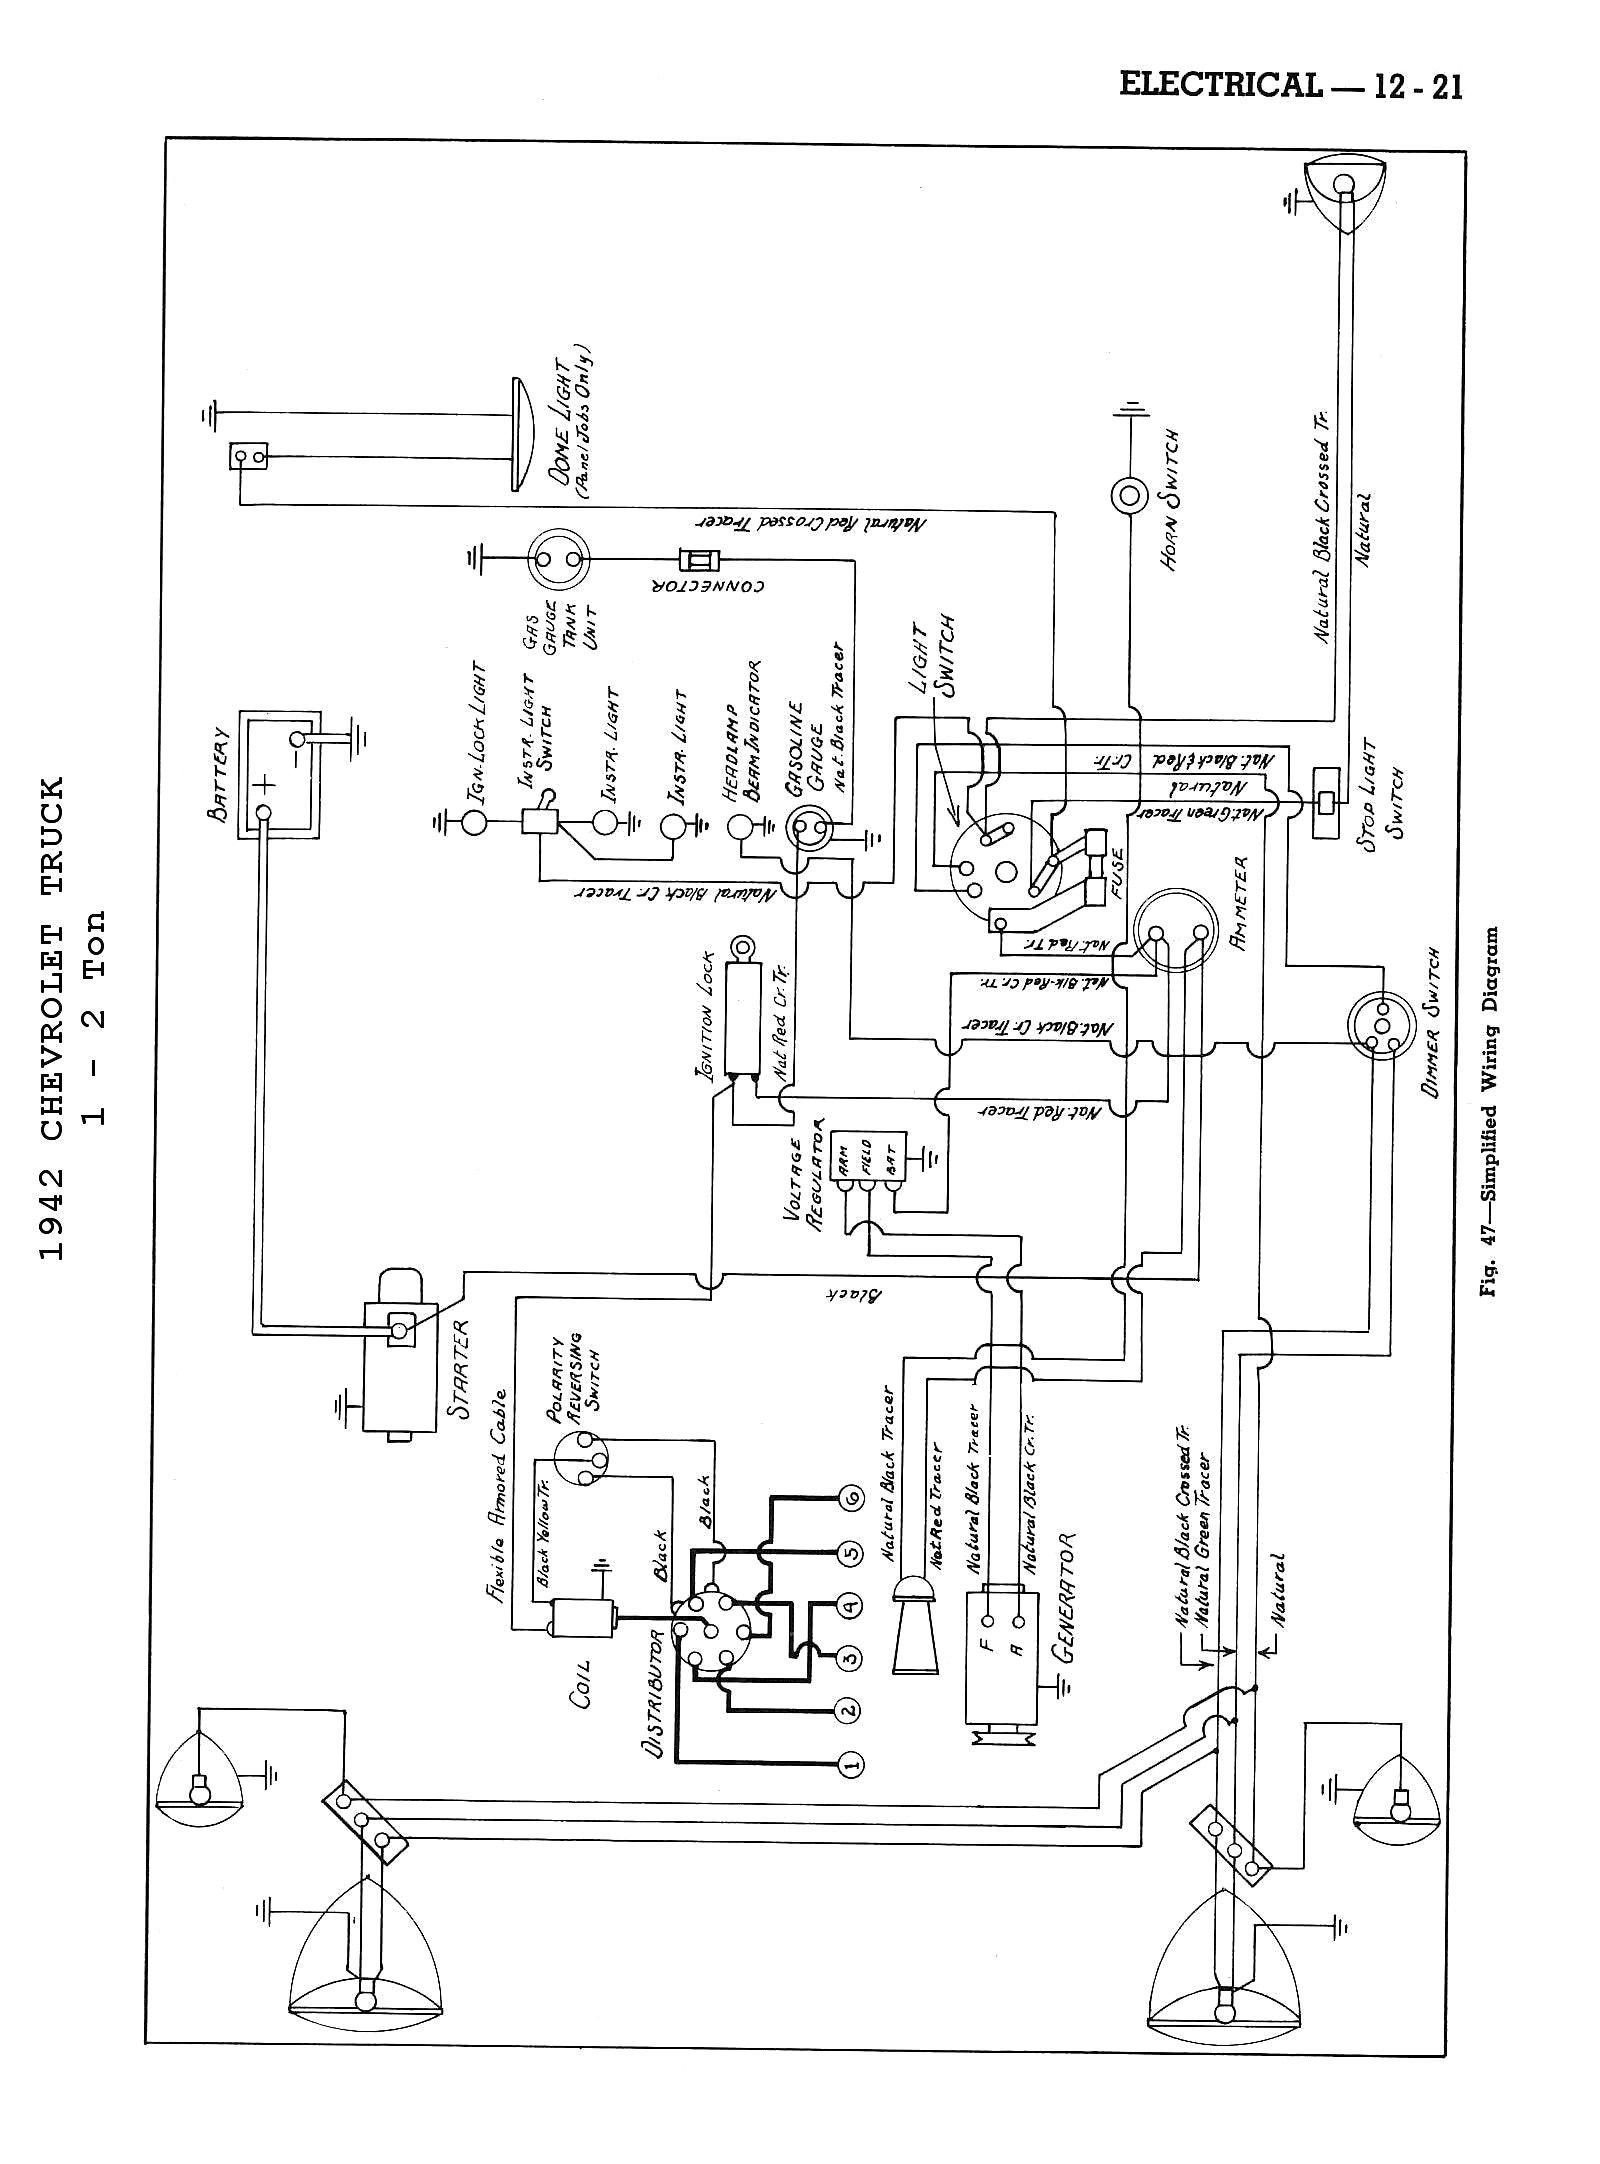 Suburban Water Heater Wiring Diagram Alternator Diagram Denso Alternator